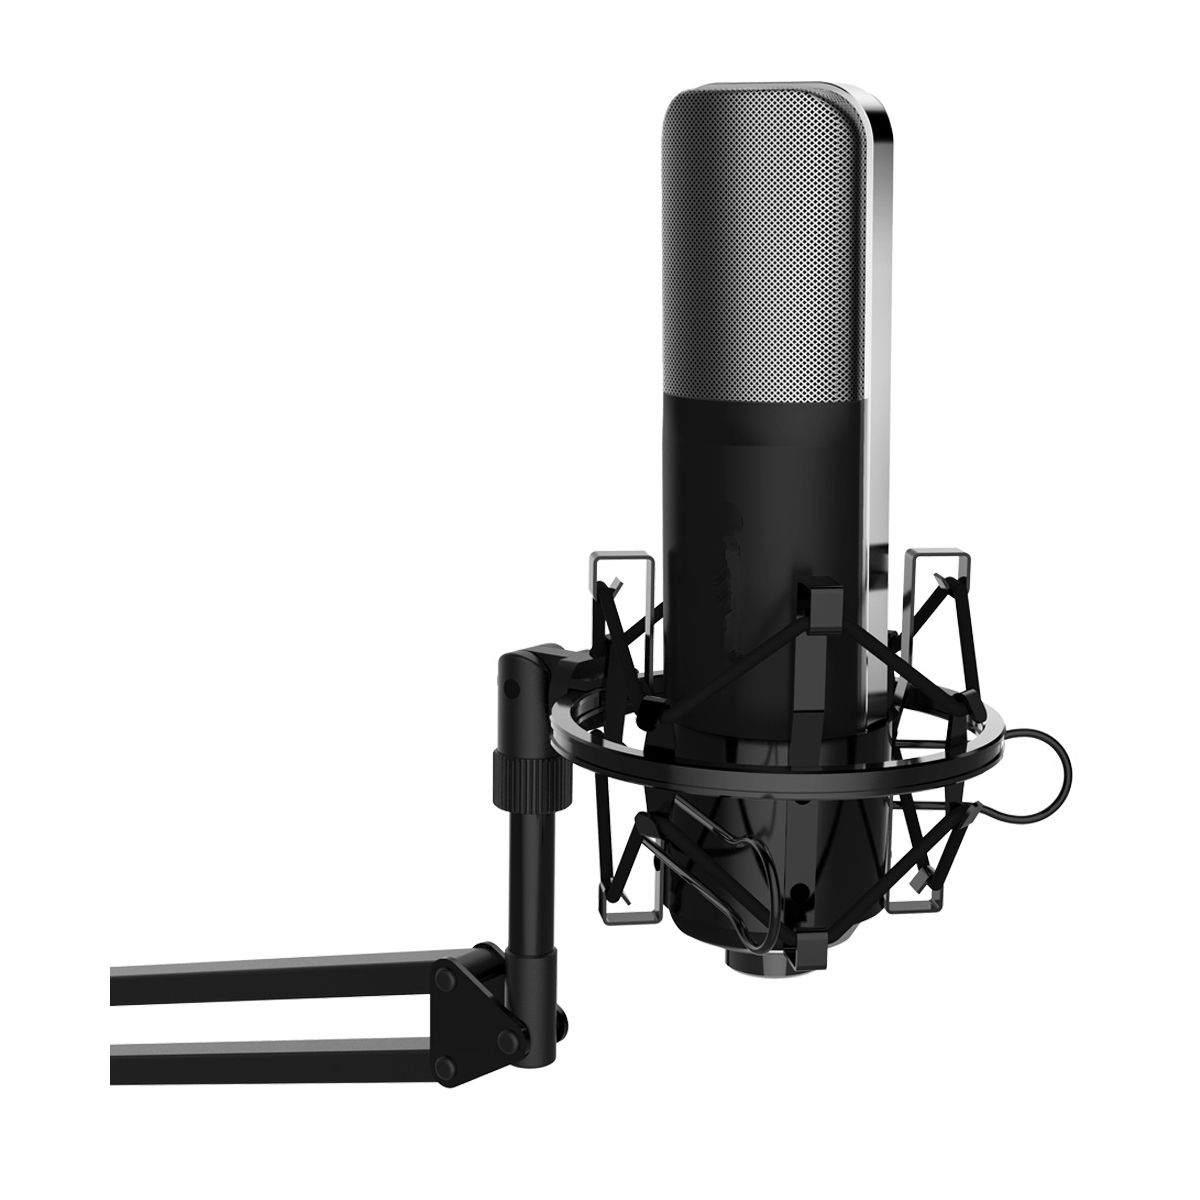 Professionnel Cardioïde À Condensateur De Studio Microphone avec Shock Mount Holder pour YouTube Chant Enregistrement, Chant, Radiodiffusion